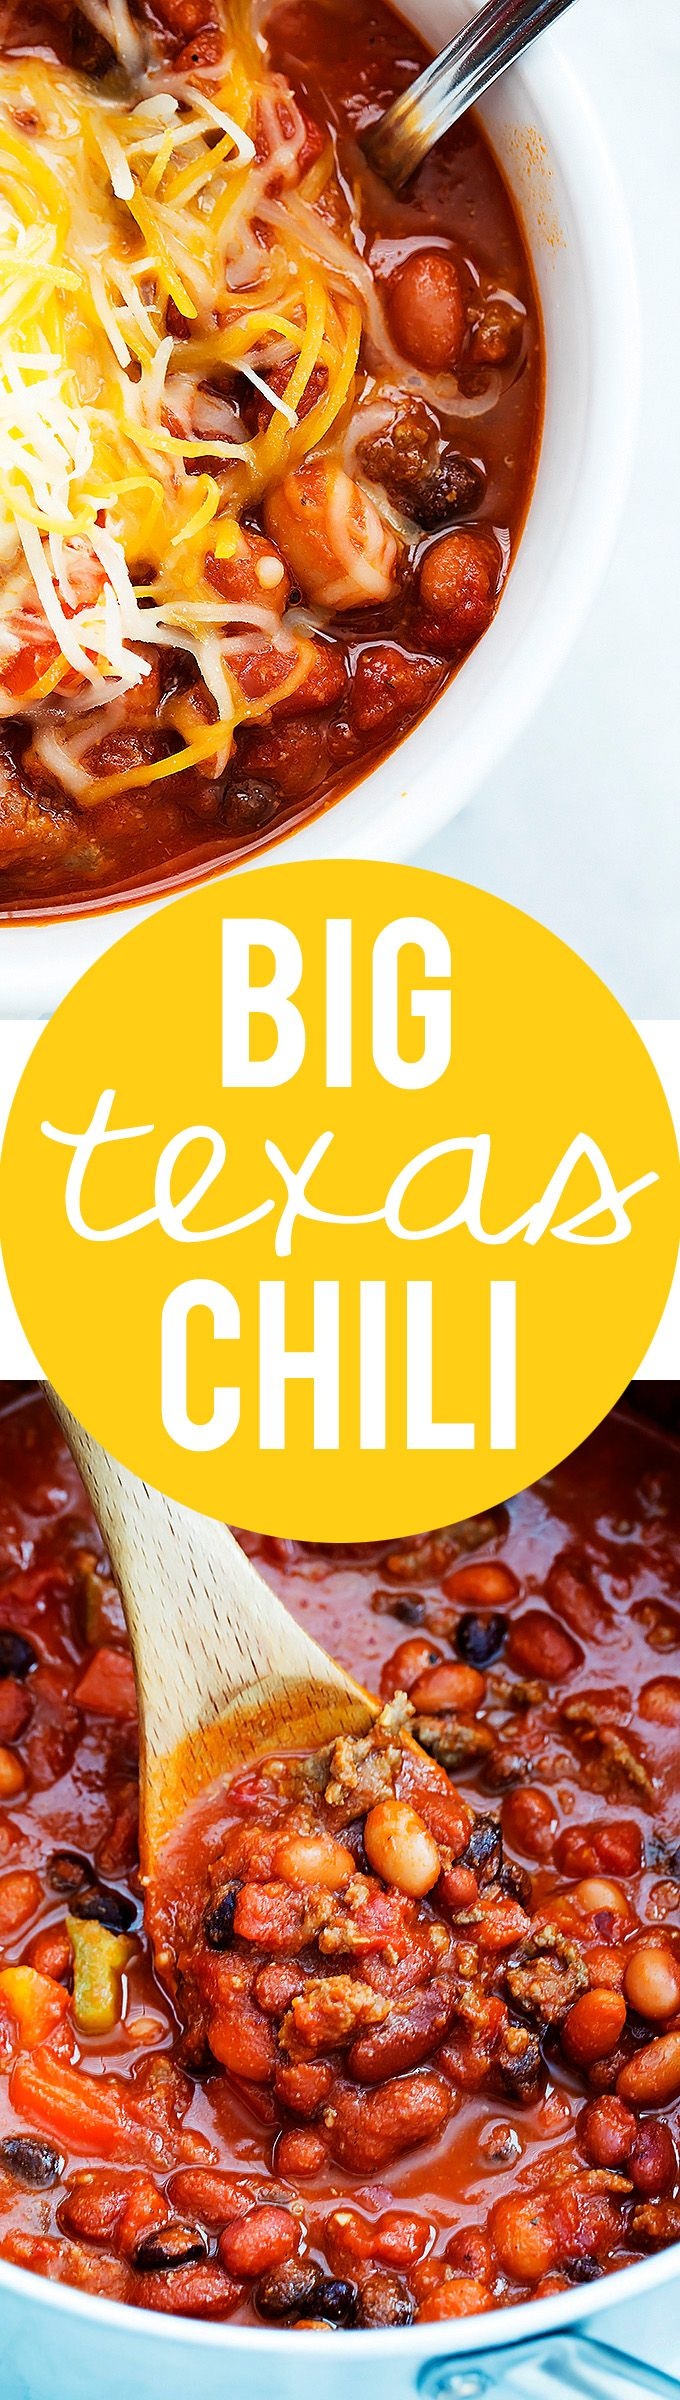 Big Texas Chili | Creme de la Crumb